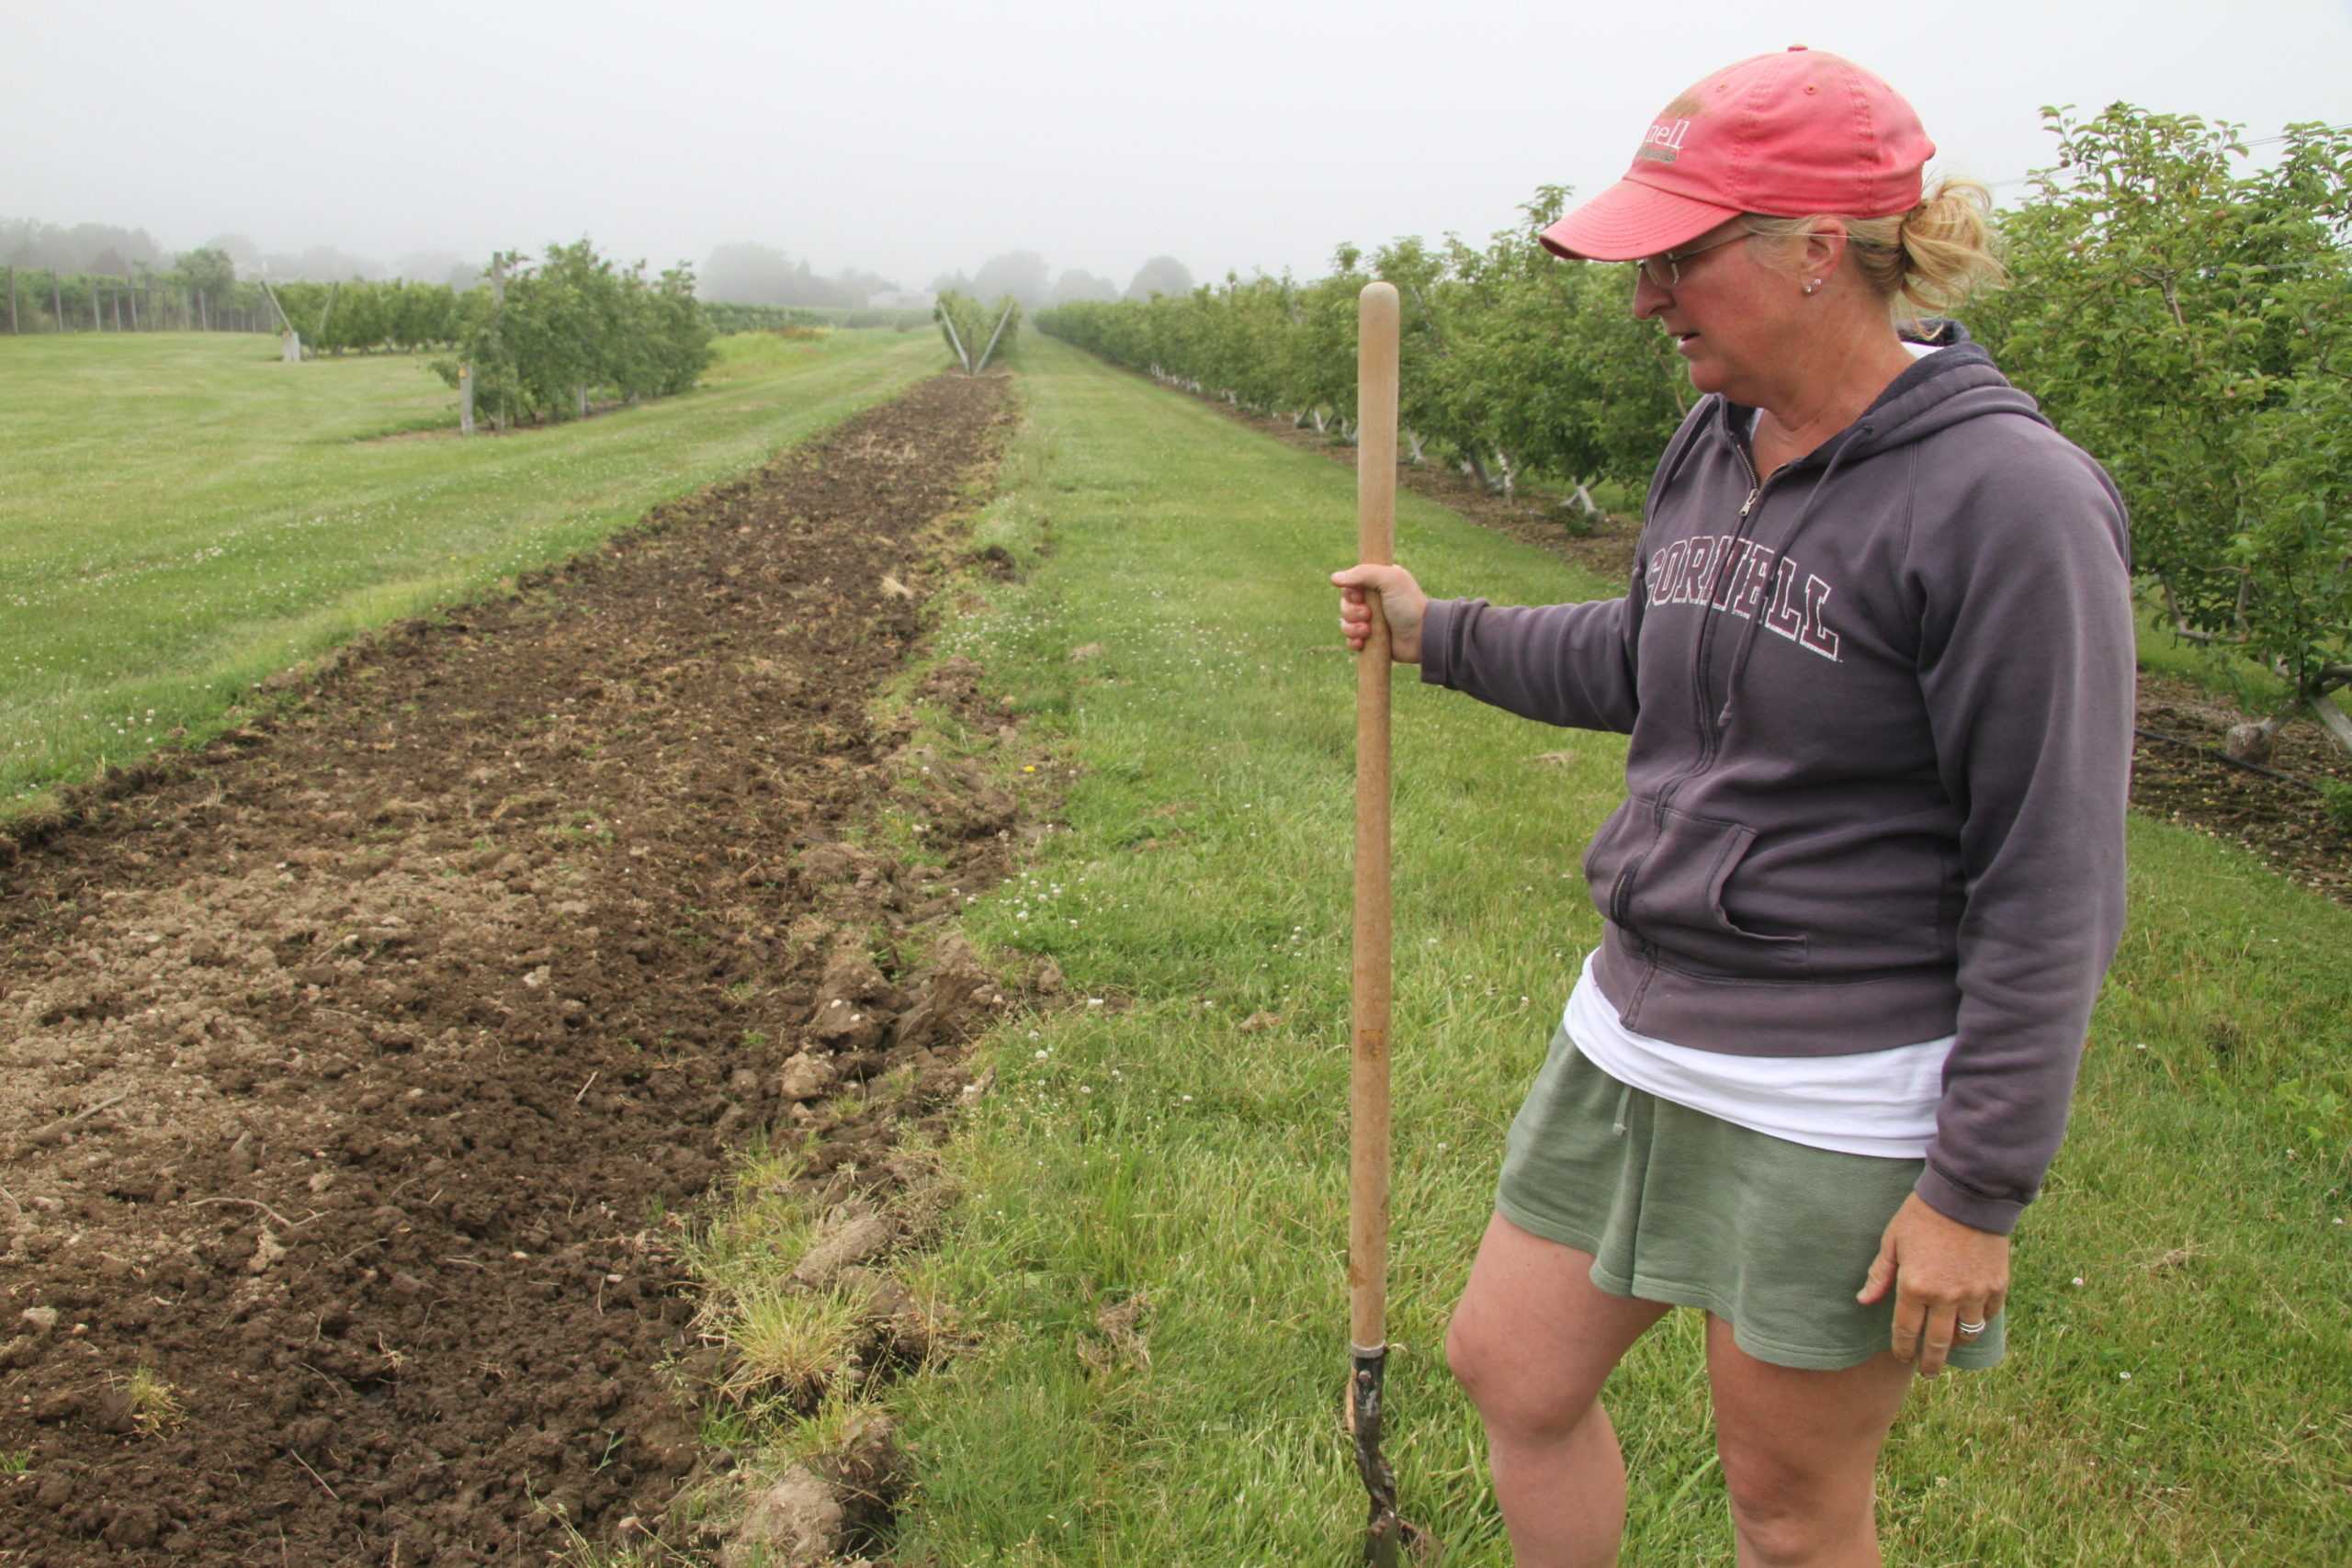 Jennifer Halsey, whose family runs The Milk Pail apple farm lost a row of apple trees that died because the soil they were planted in decades ago is now perpetually saturated from the high water level in Mecox Bay.